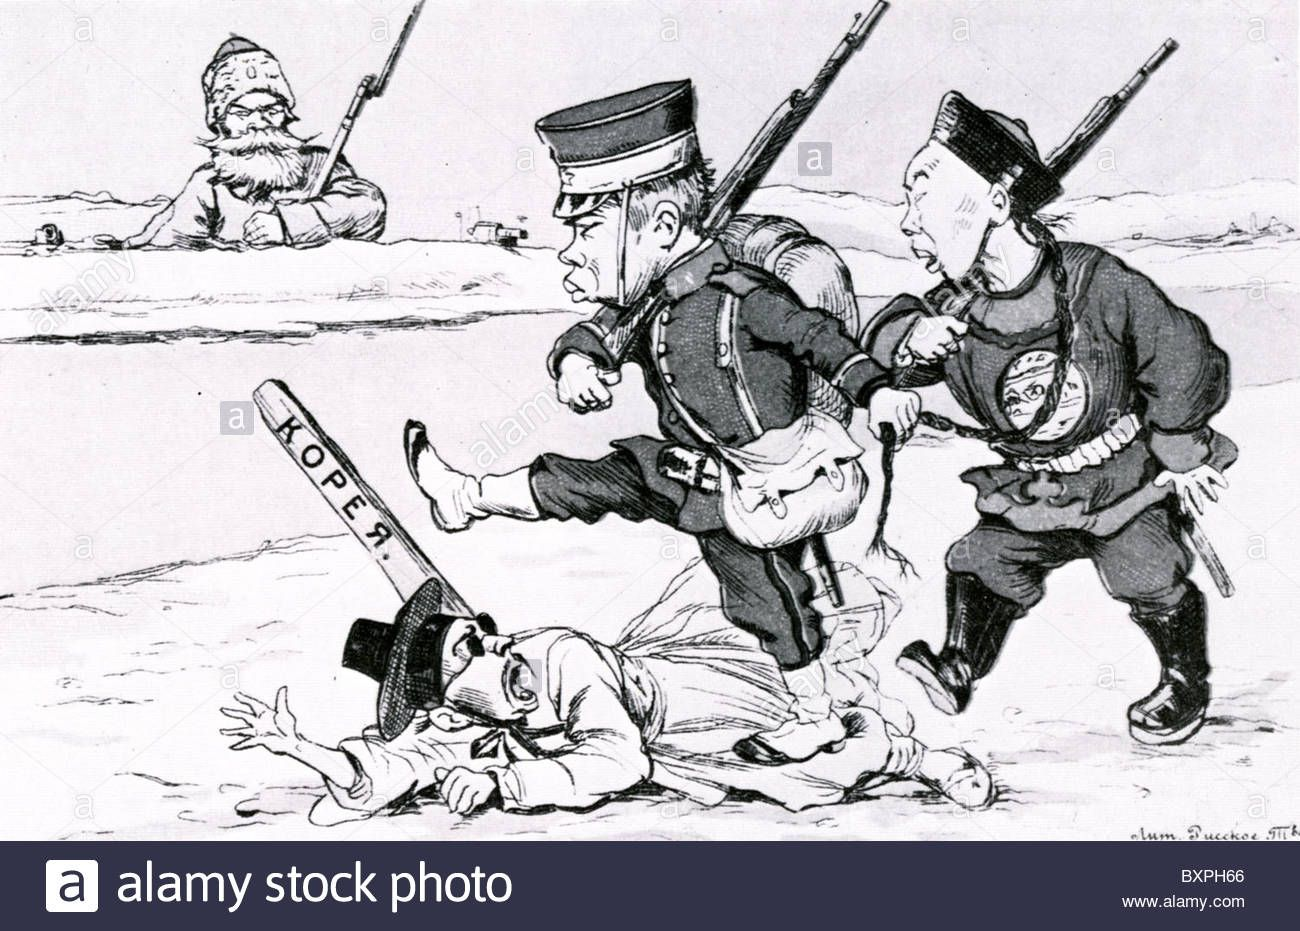 Download This Stock Image Russo Japanese War 5